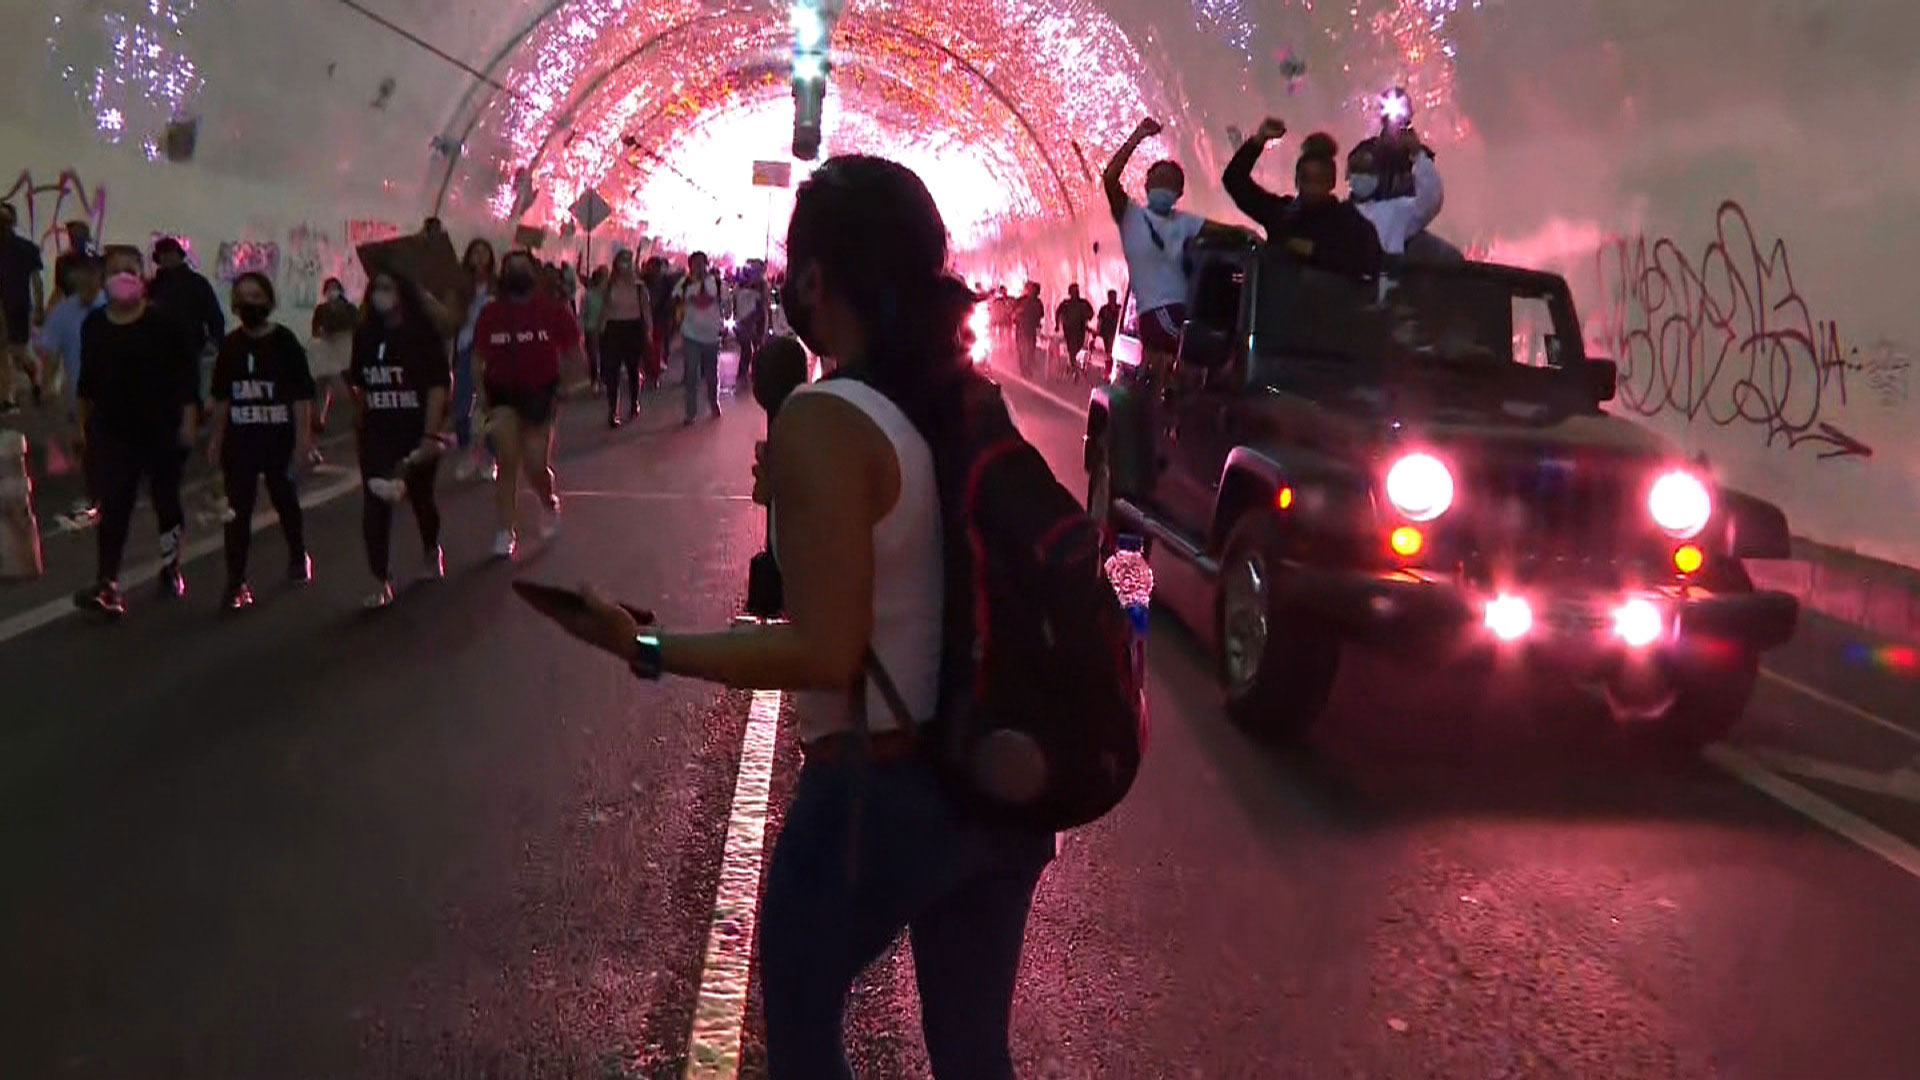 CNN's Kyung Lah reports from a protest on Thursday night in Los Angeles.